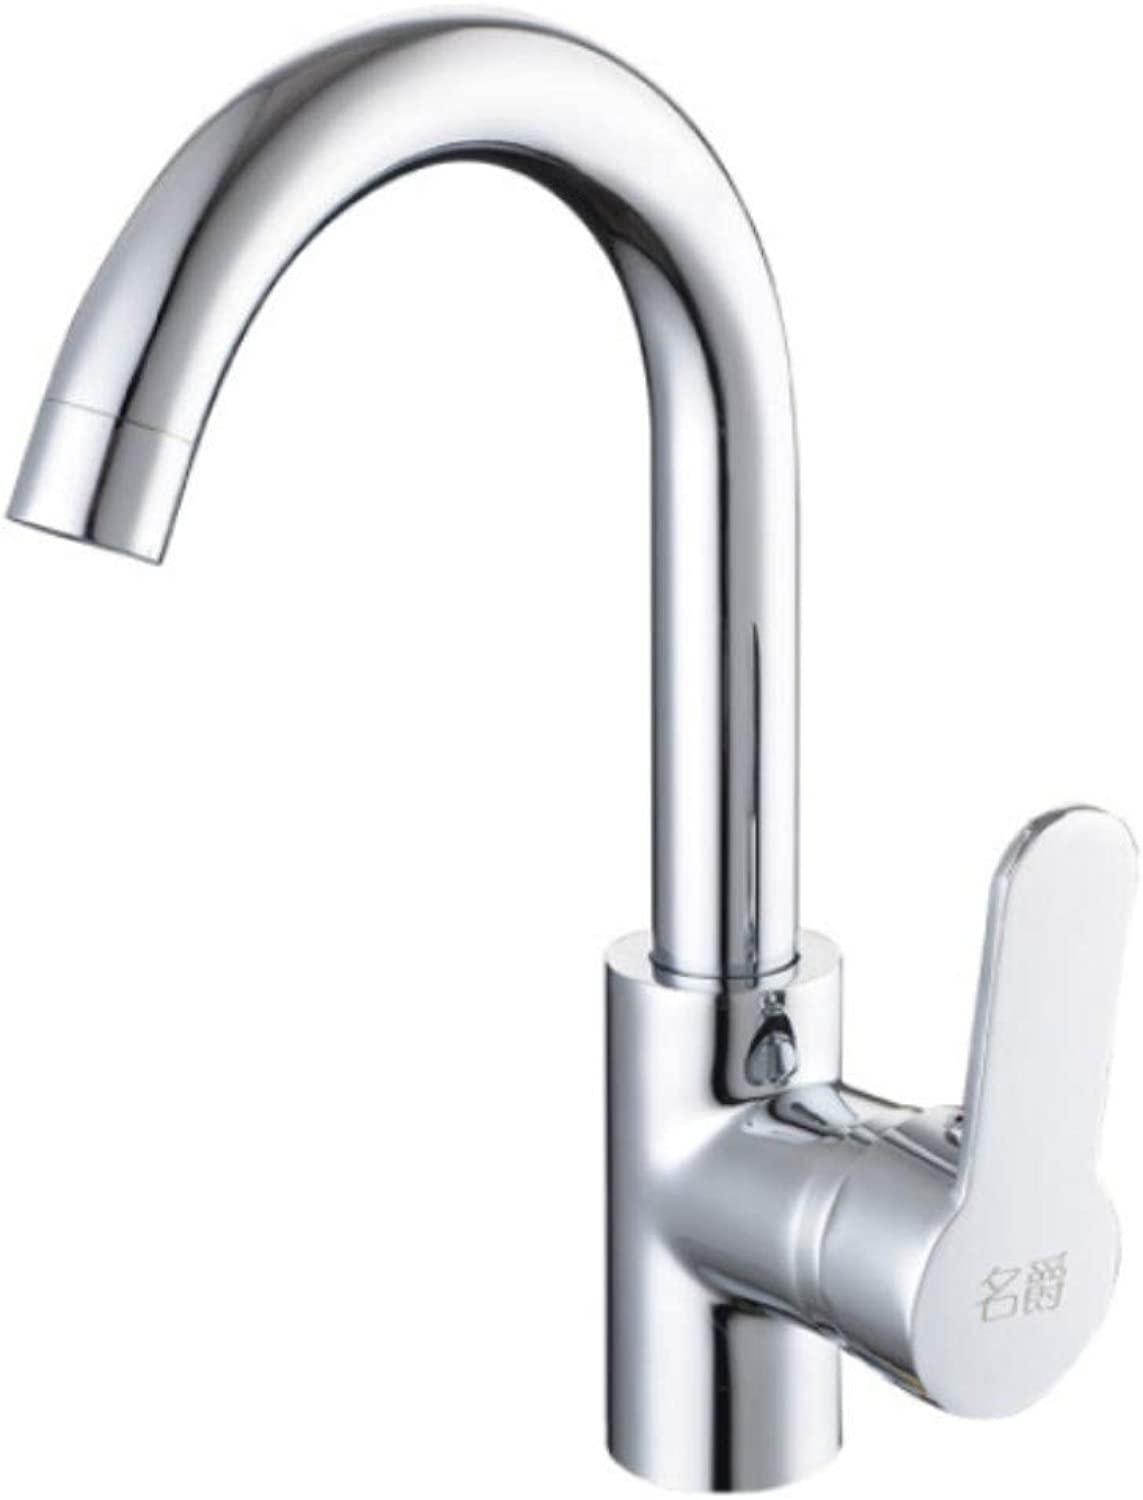 Tap Bathroom Sinkcopper Basin Faucet 360 Degree redating Bathroom Wash Basin Hot and Cold Water Faucet